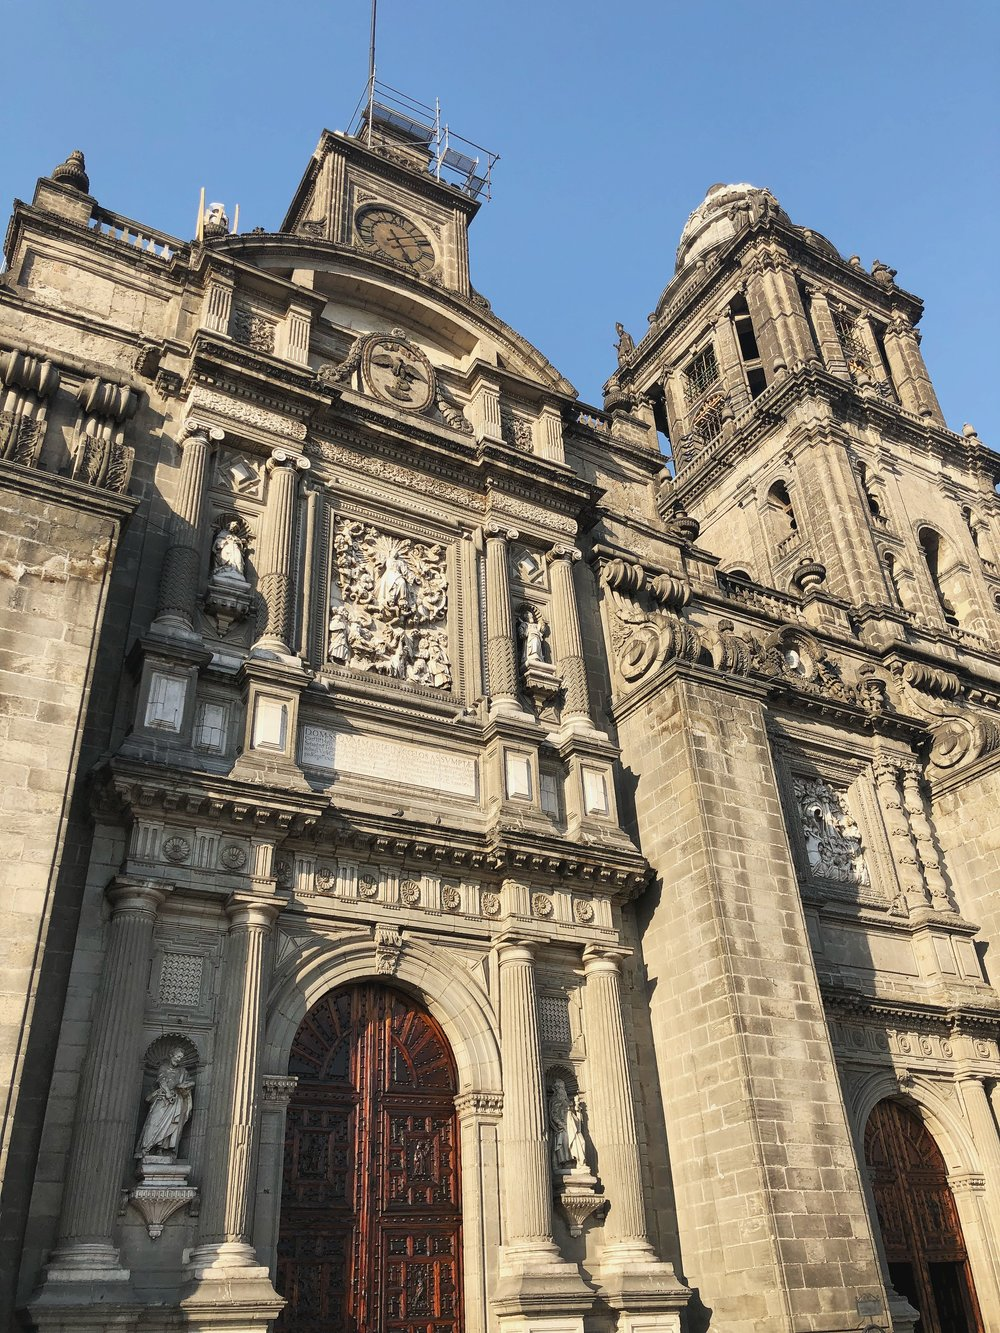 The phenomenal architecture of  La Catedral